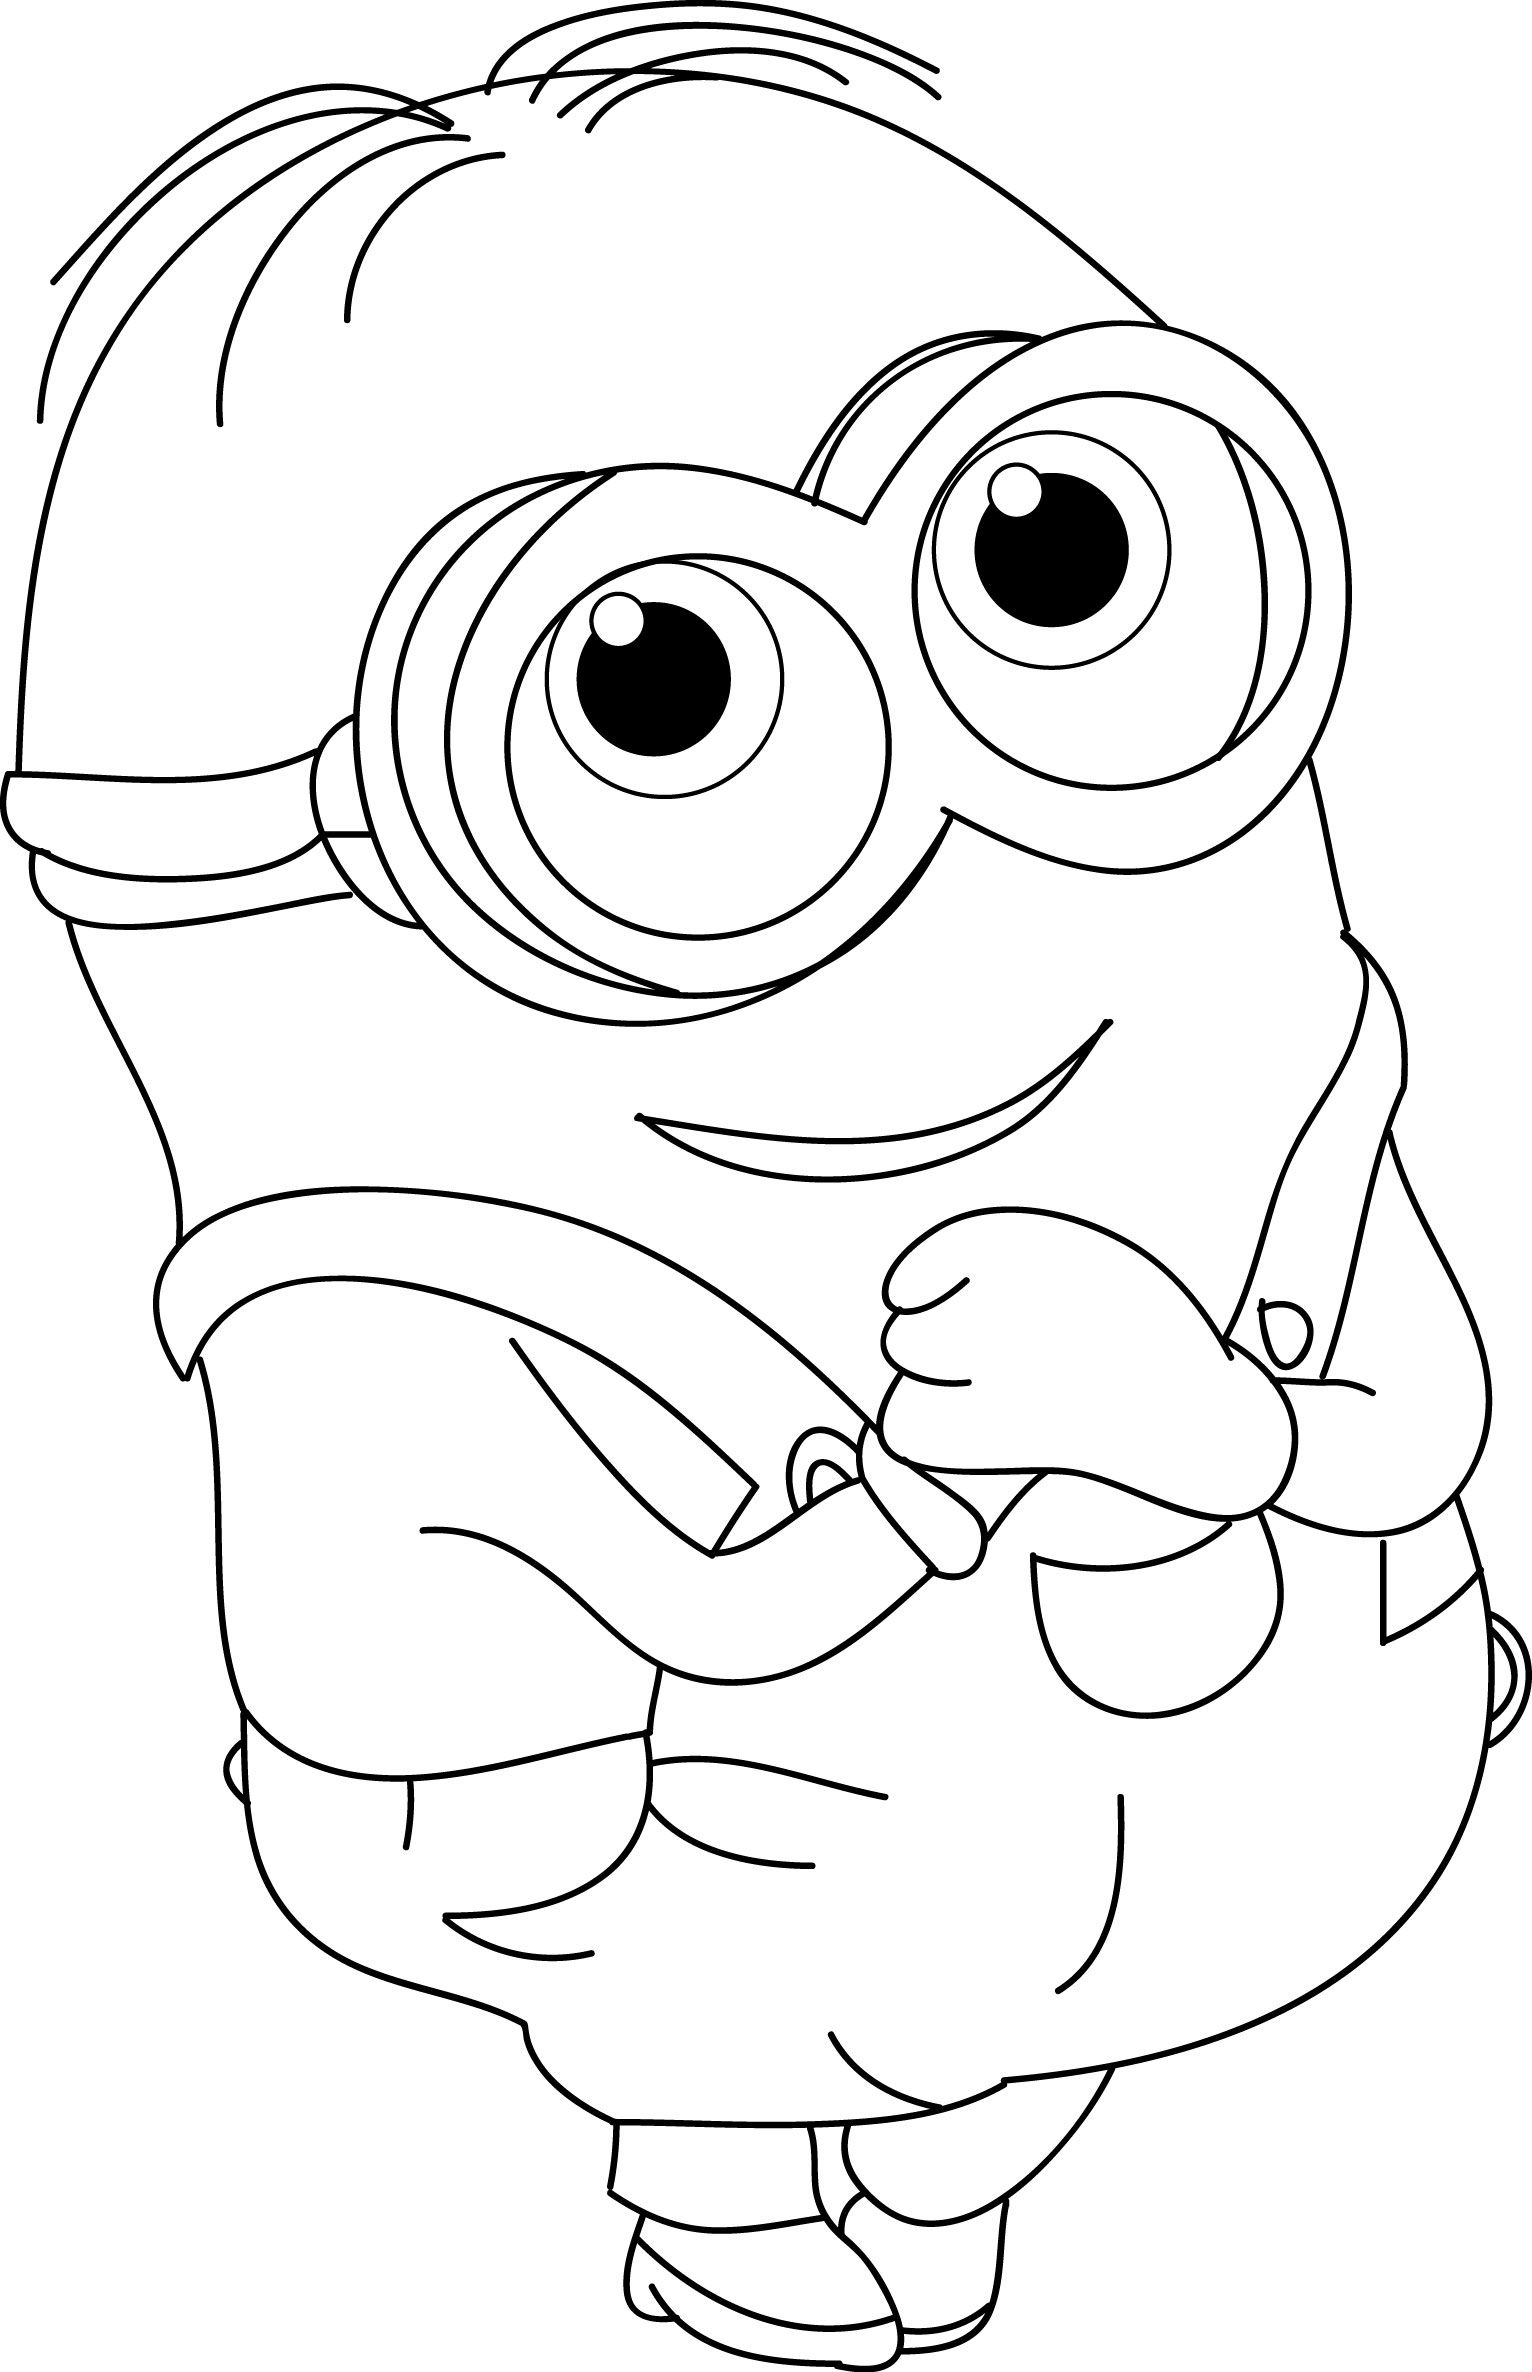 Coloring games online minion - The Minions Dave Coloring Page For Kids Free Printable Coloring Pages For Kids